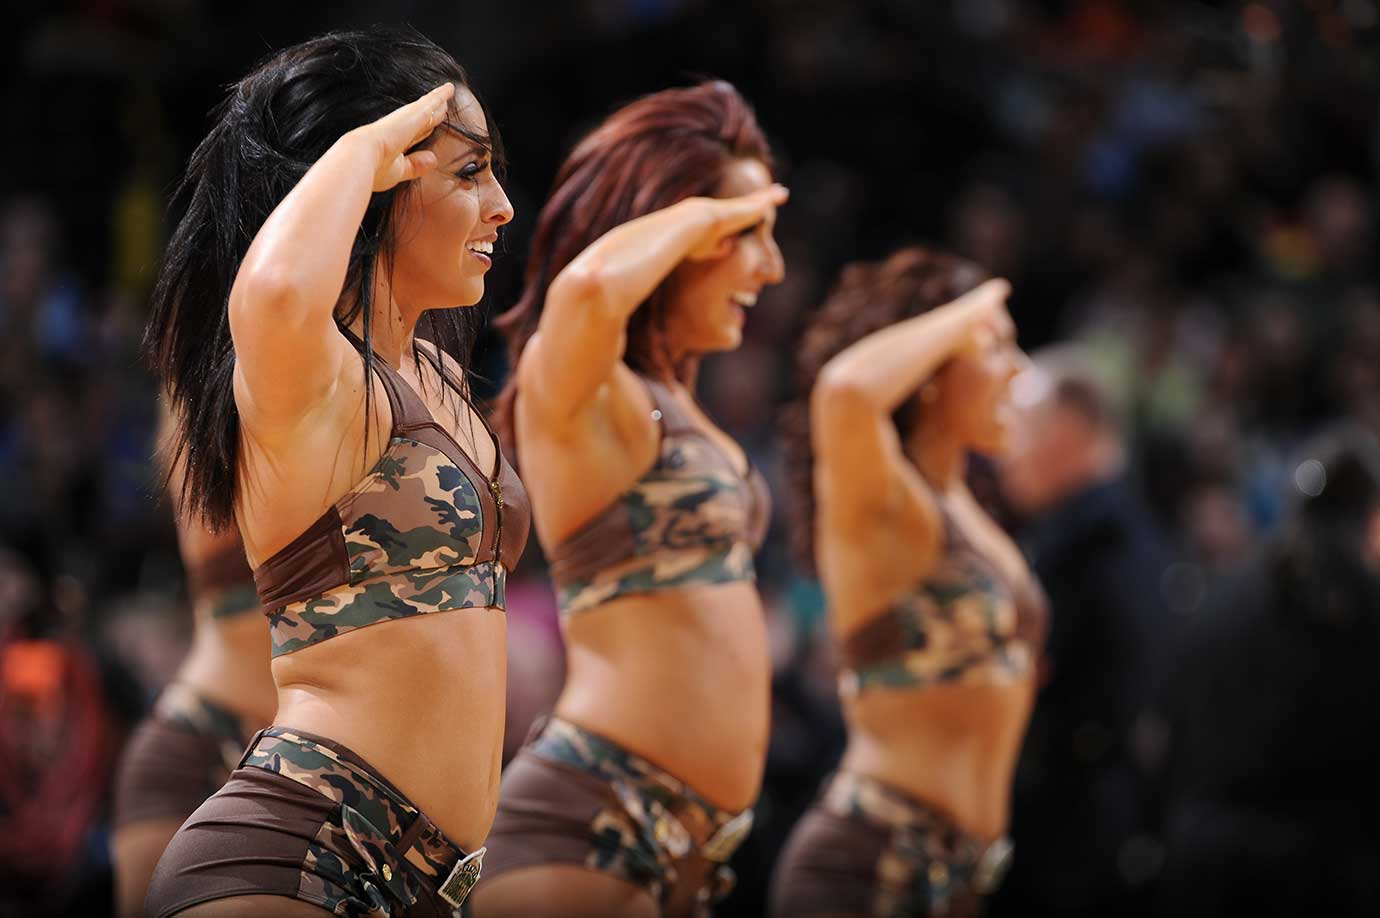 The Denver Nuggets dance team  during a game against the Sacramento Kings.